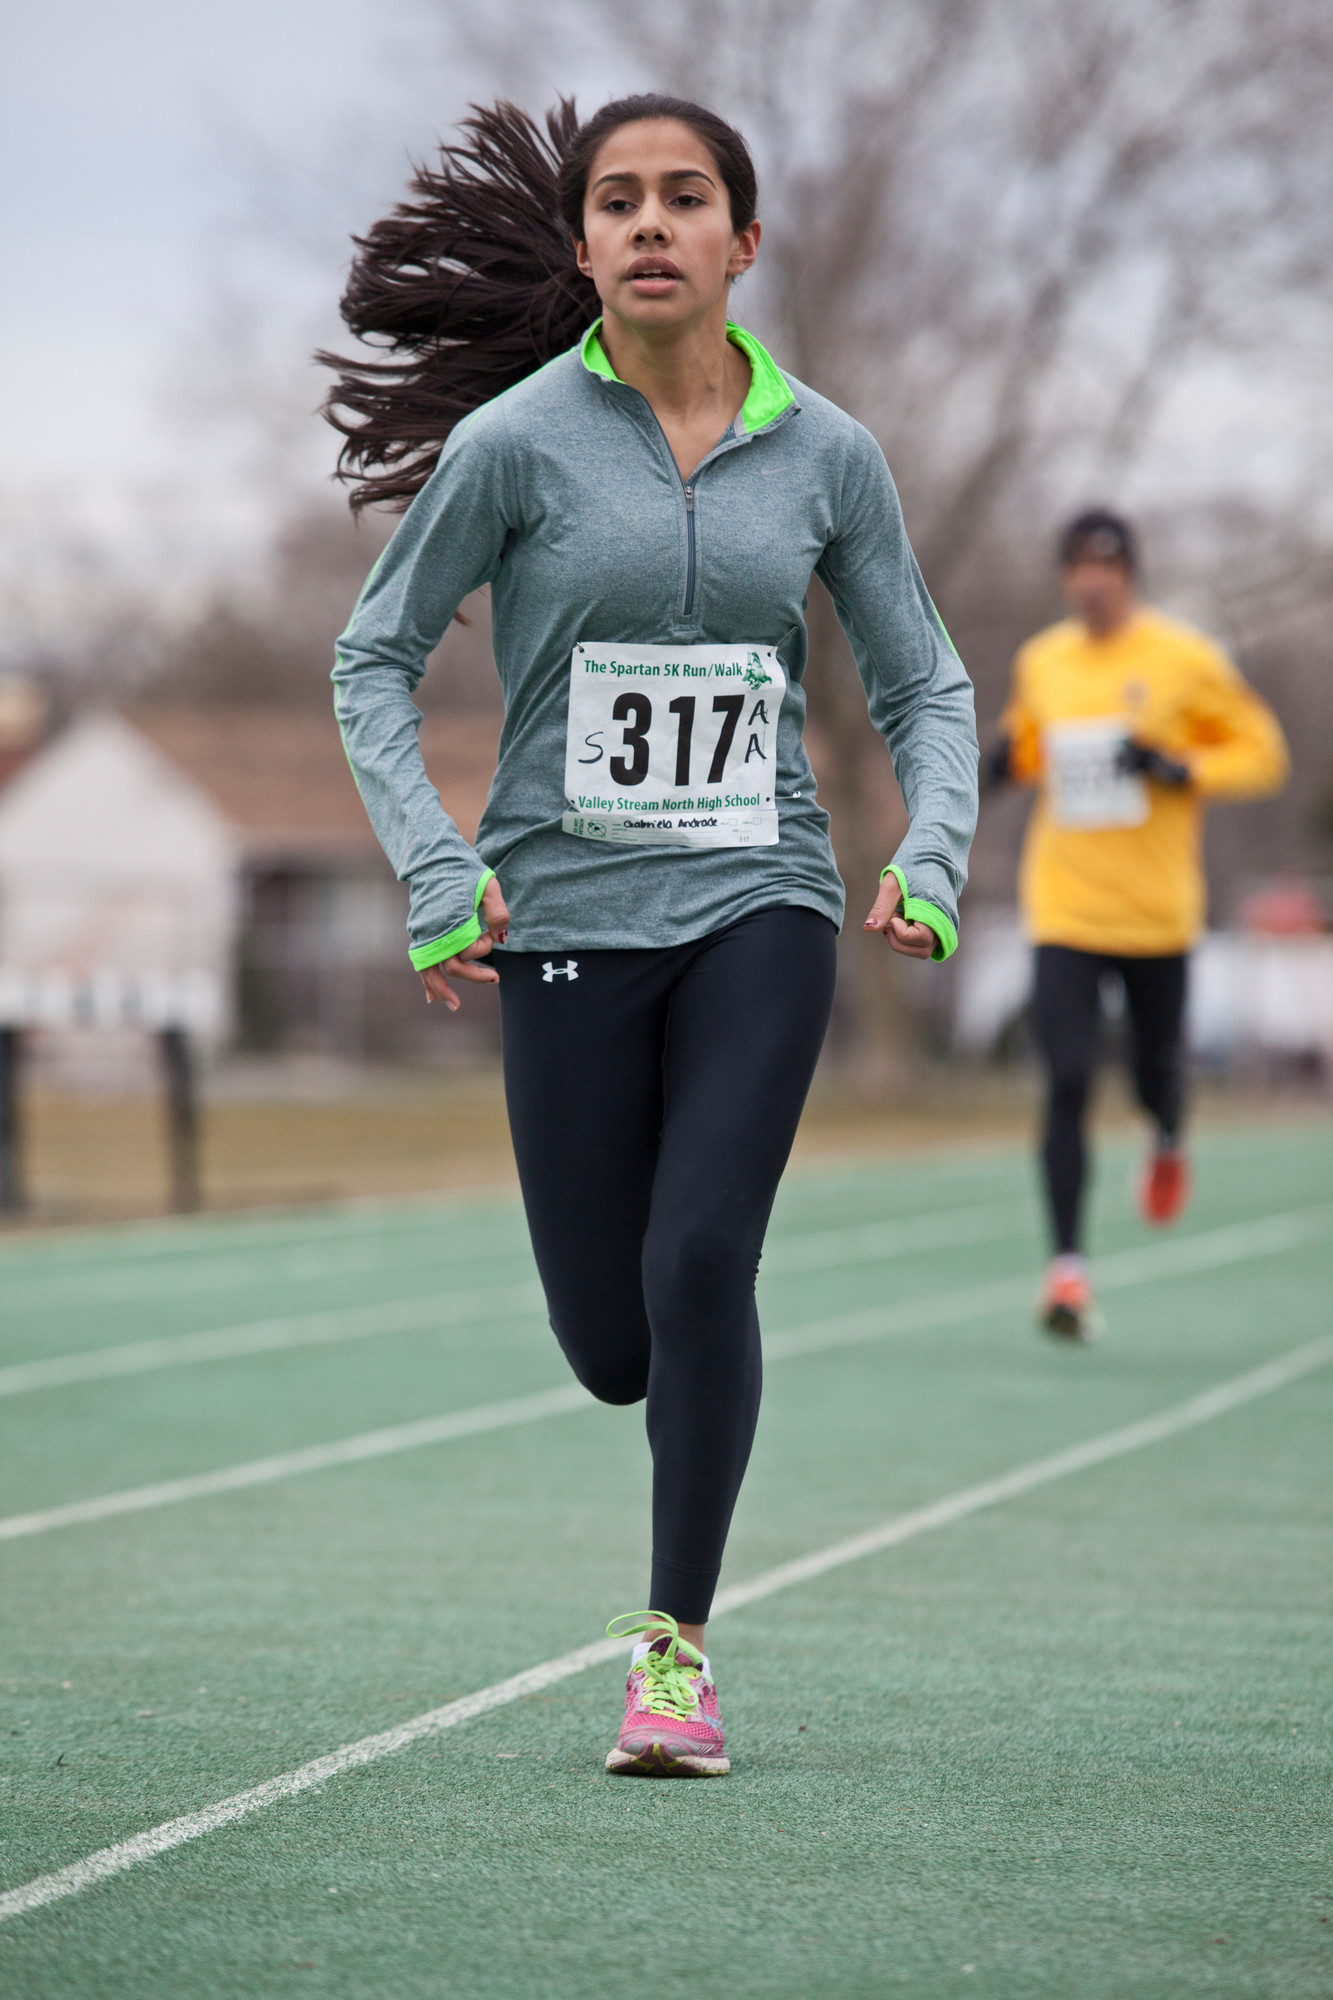 Andrade Gabriela, 14, finished first in the women's division in the Spartan 5K.